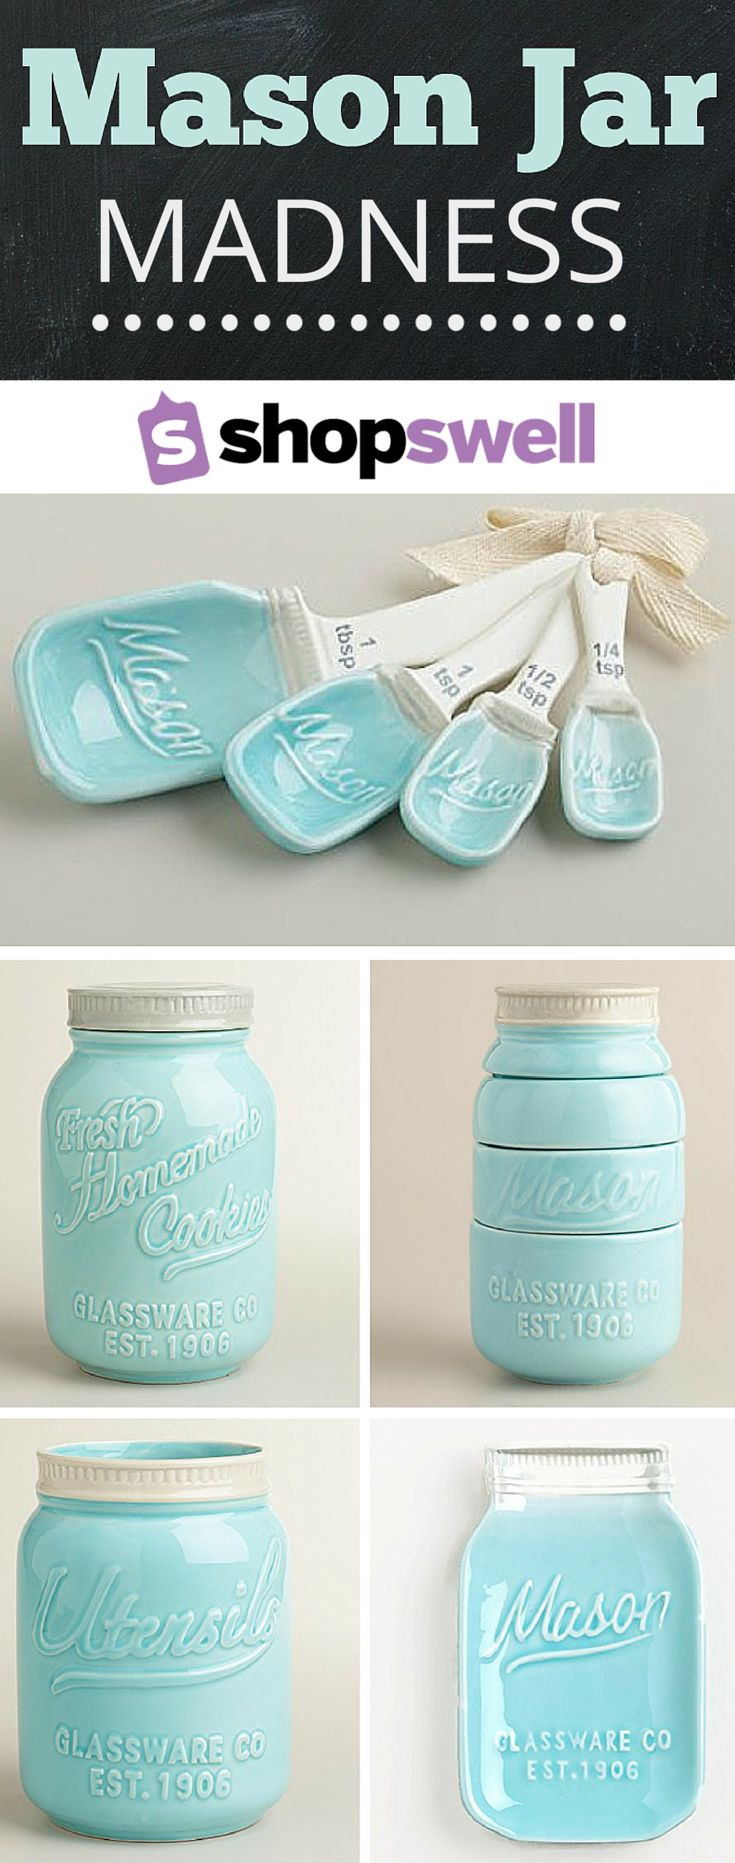 151 best In the Kitchen images on Pinterest   Cooking ware, Kitchen ...